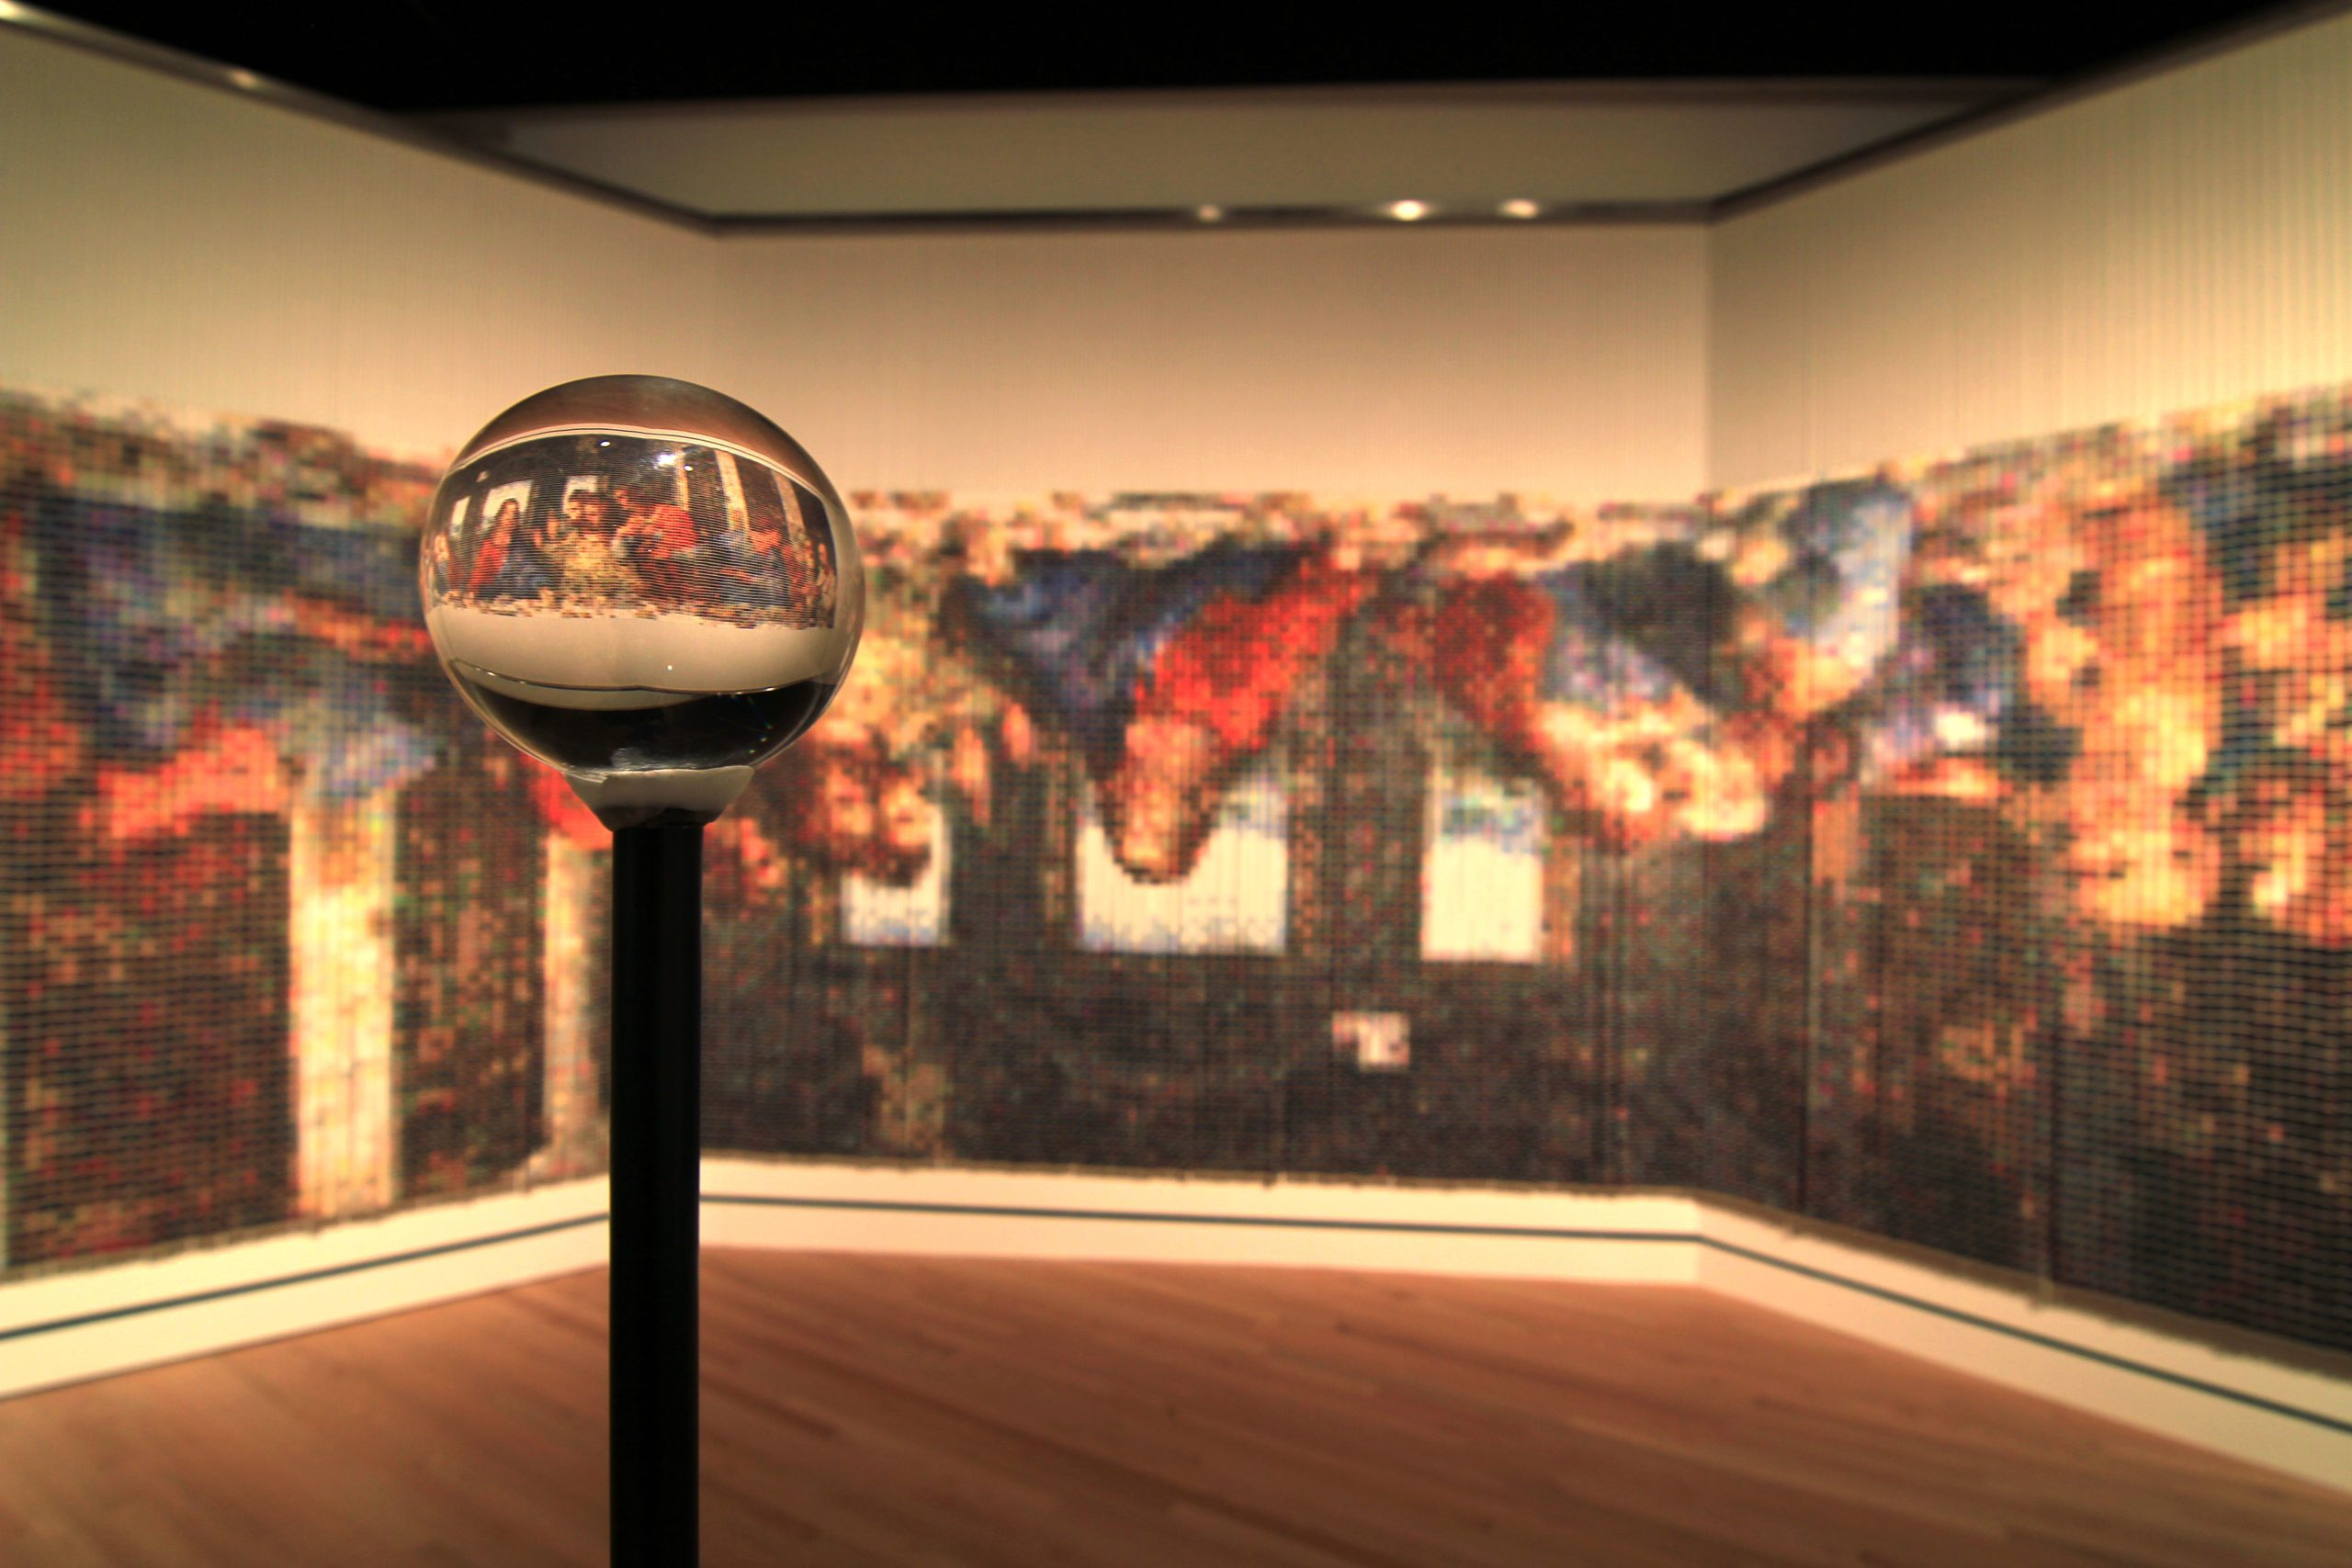 Devorah Sperber, After The Last Supper, 2005, 84 1/2 x 348 x 108 in. (214.6 x 883.9 x 274.3 cm), 20,736 thread spools, hanging apparatus, ball chain, viewing sphere, and stand, Crystal Bridges Museum of American Art.